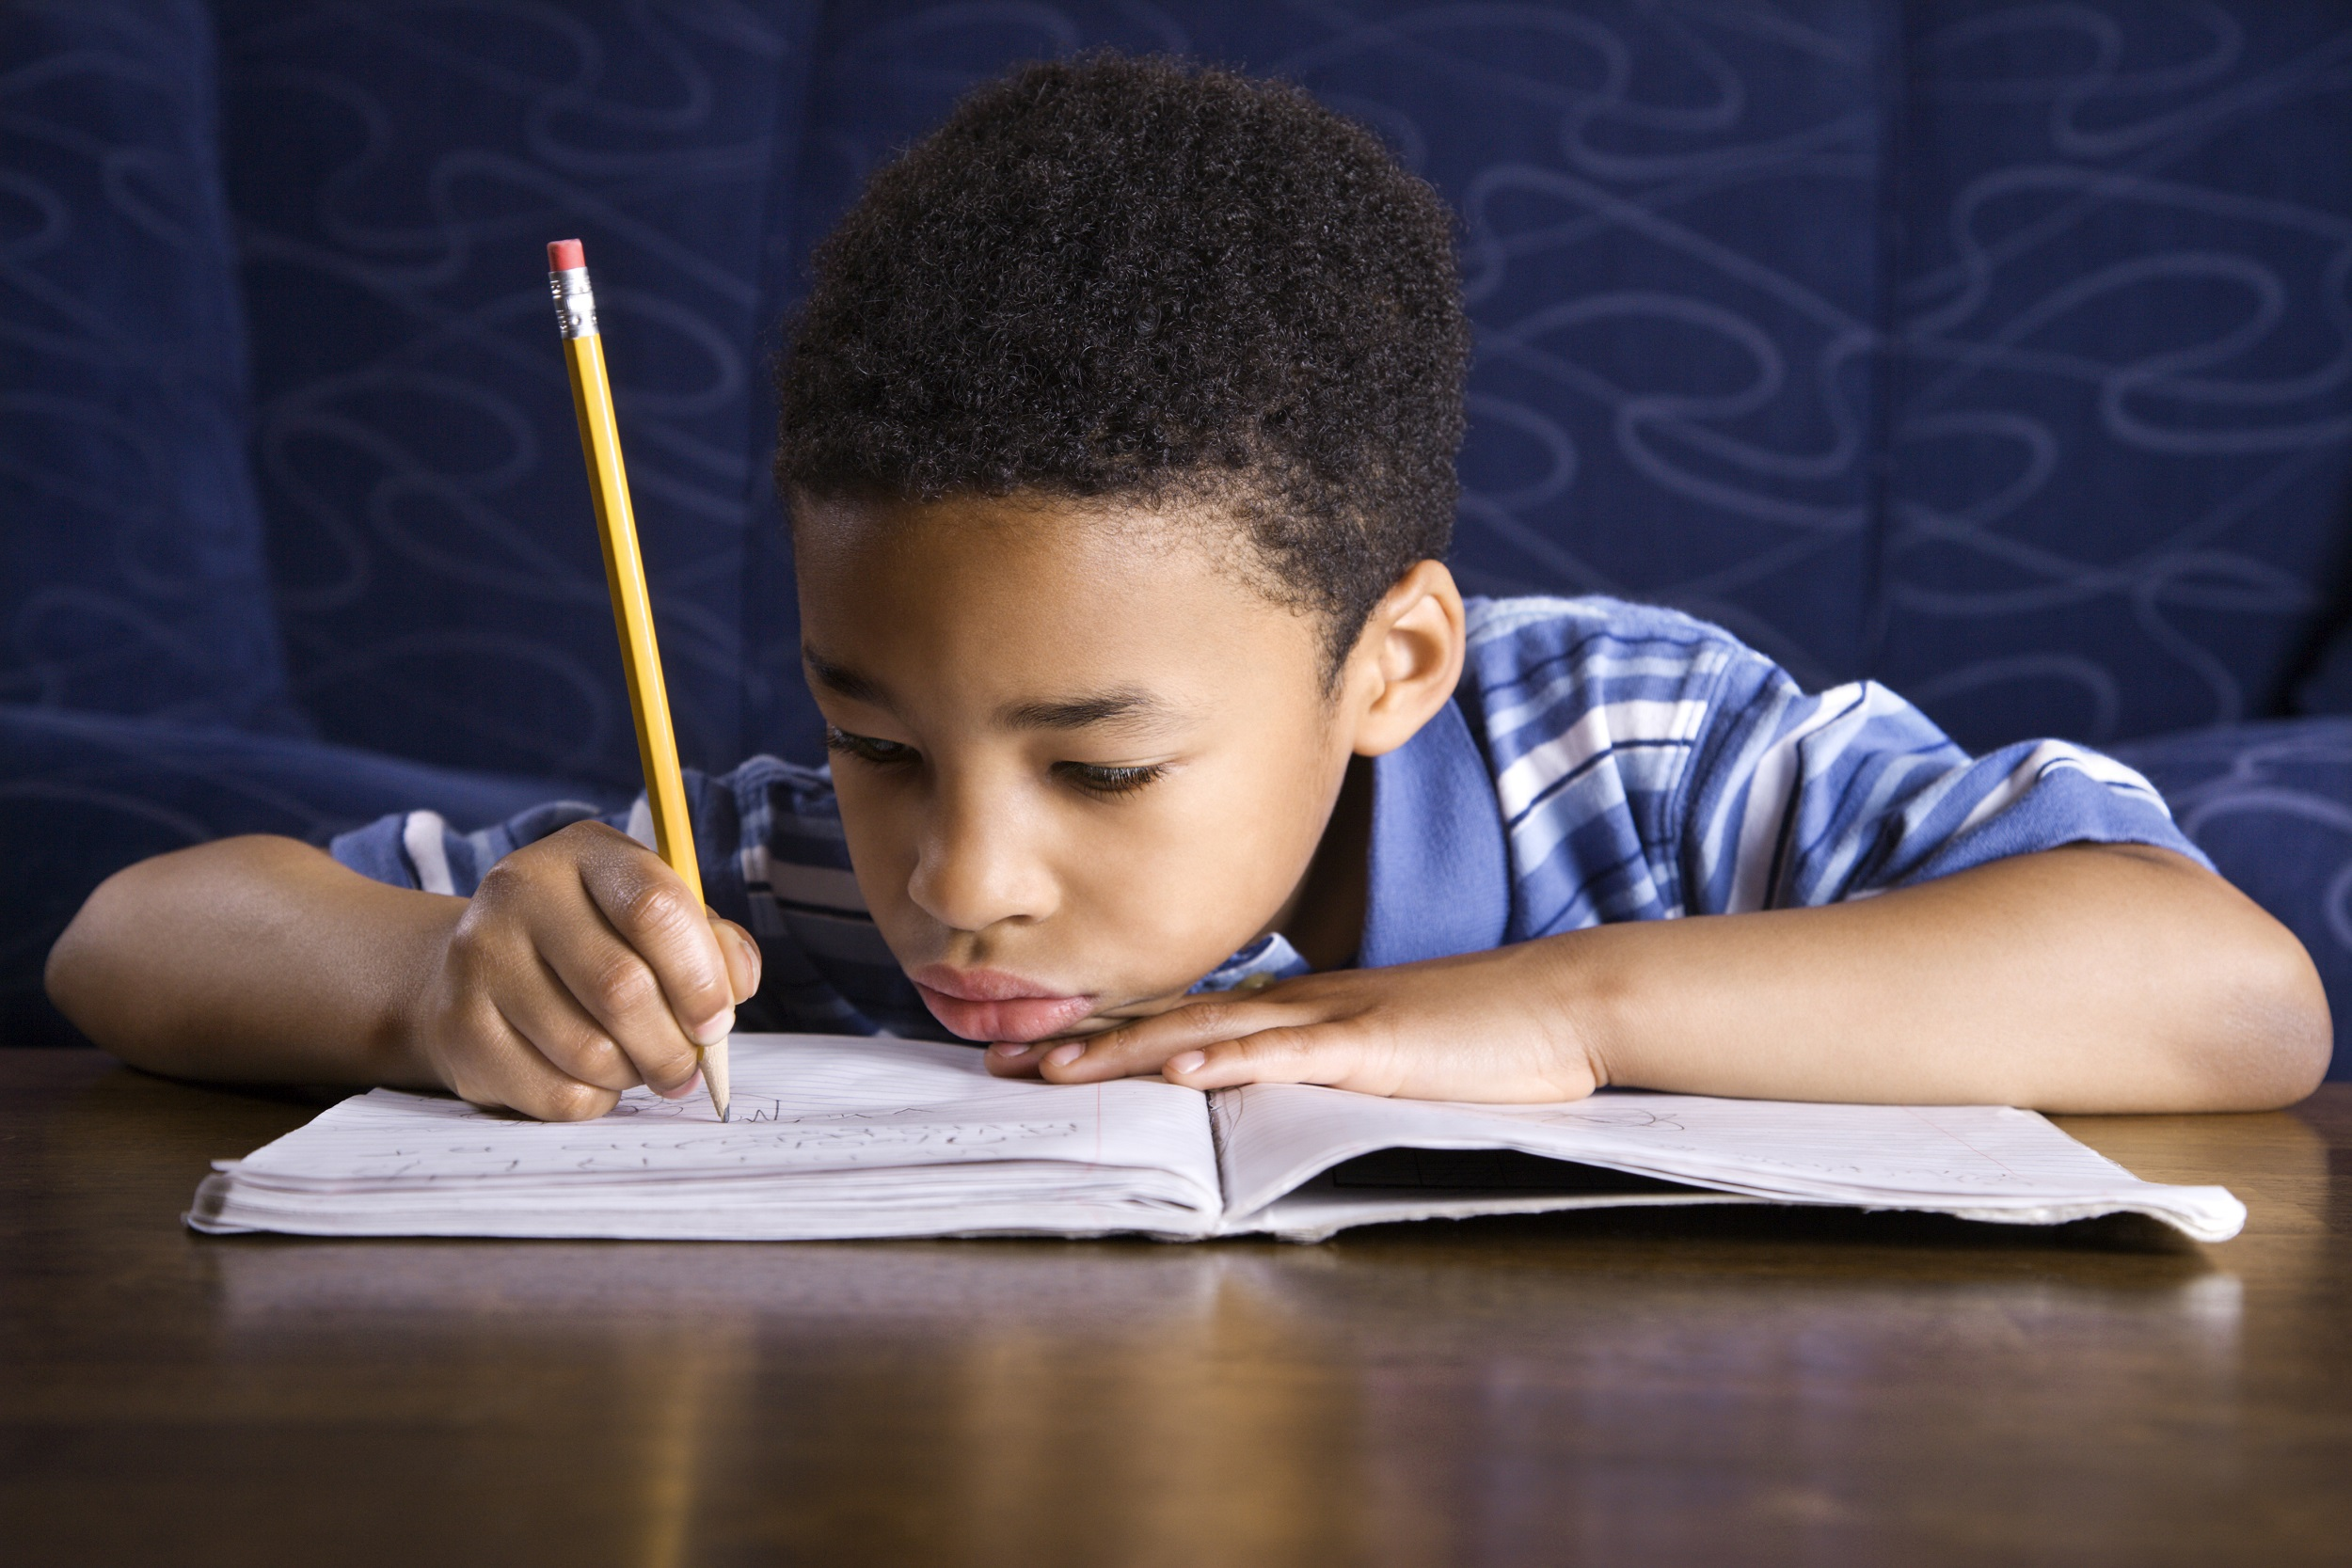 Young African American Boy Writing In Notebook with Pencil